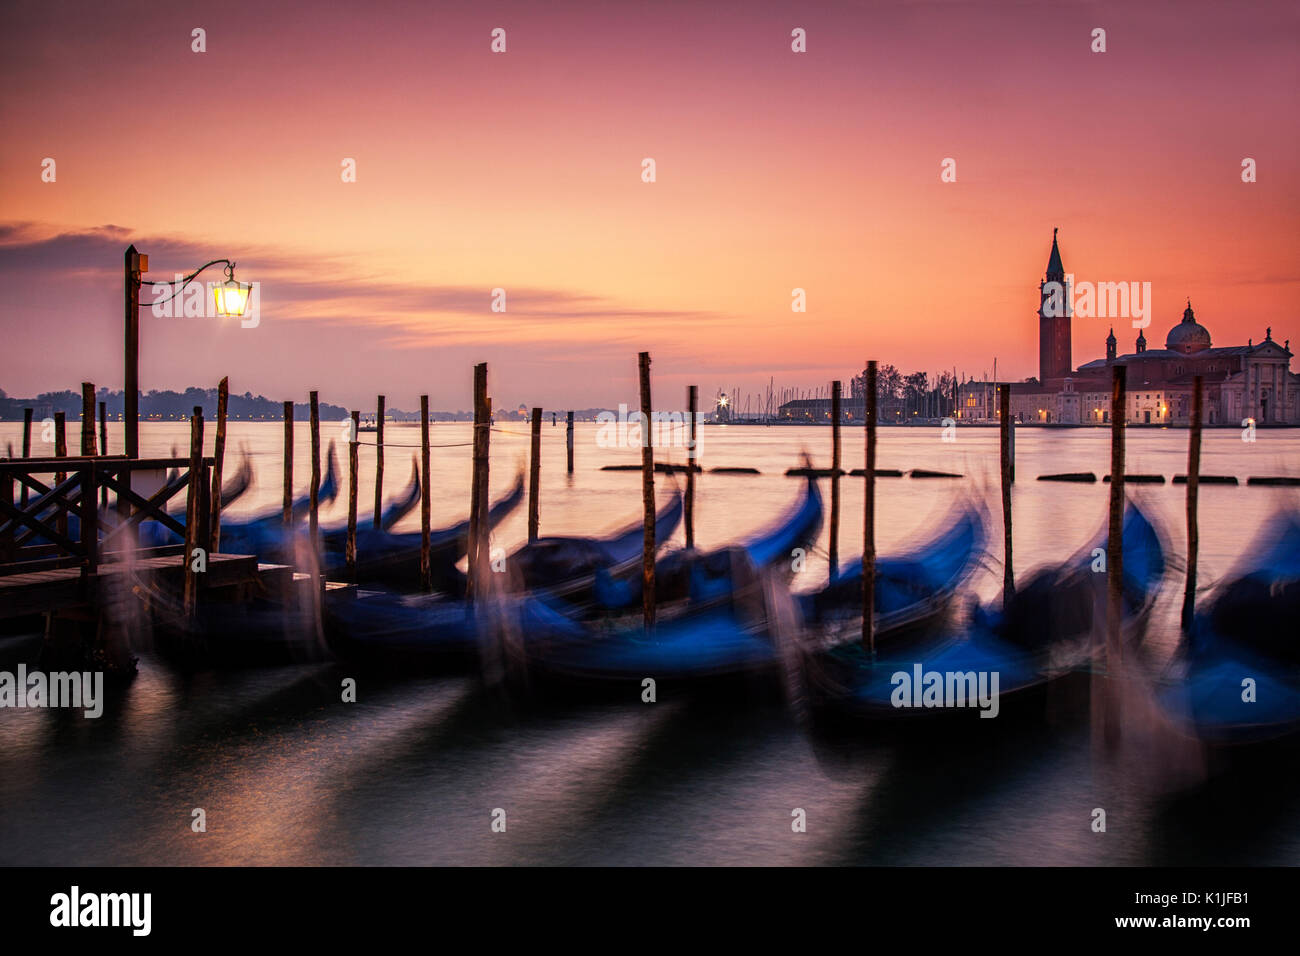 Sinrise over the gondolas of Venice, Italy and the island off San Giorgio Maggiore. Stock Photo